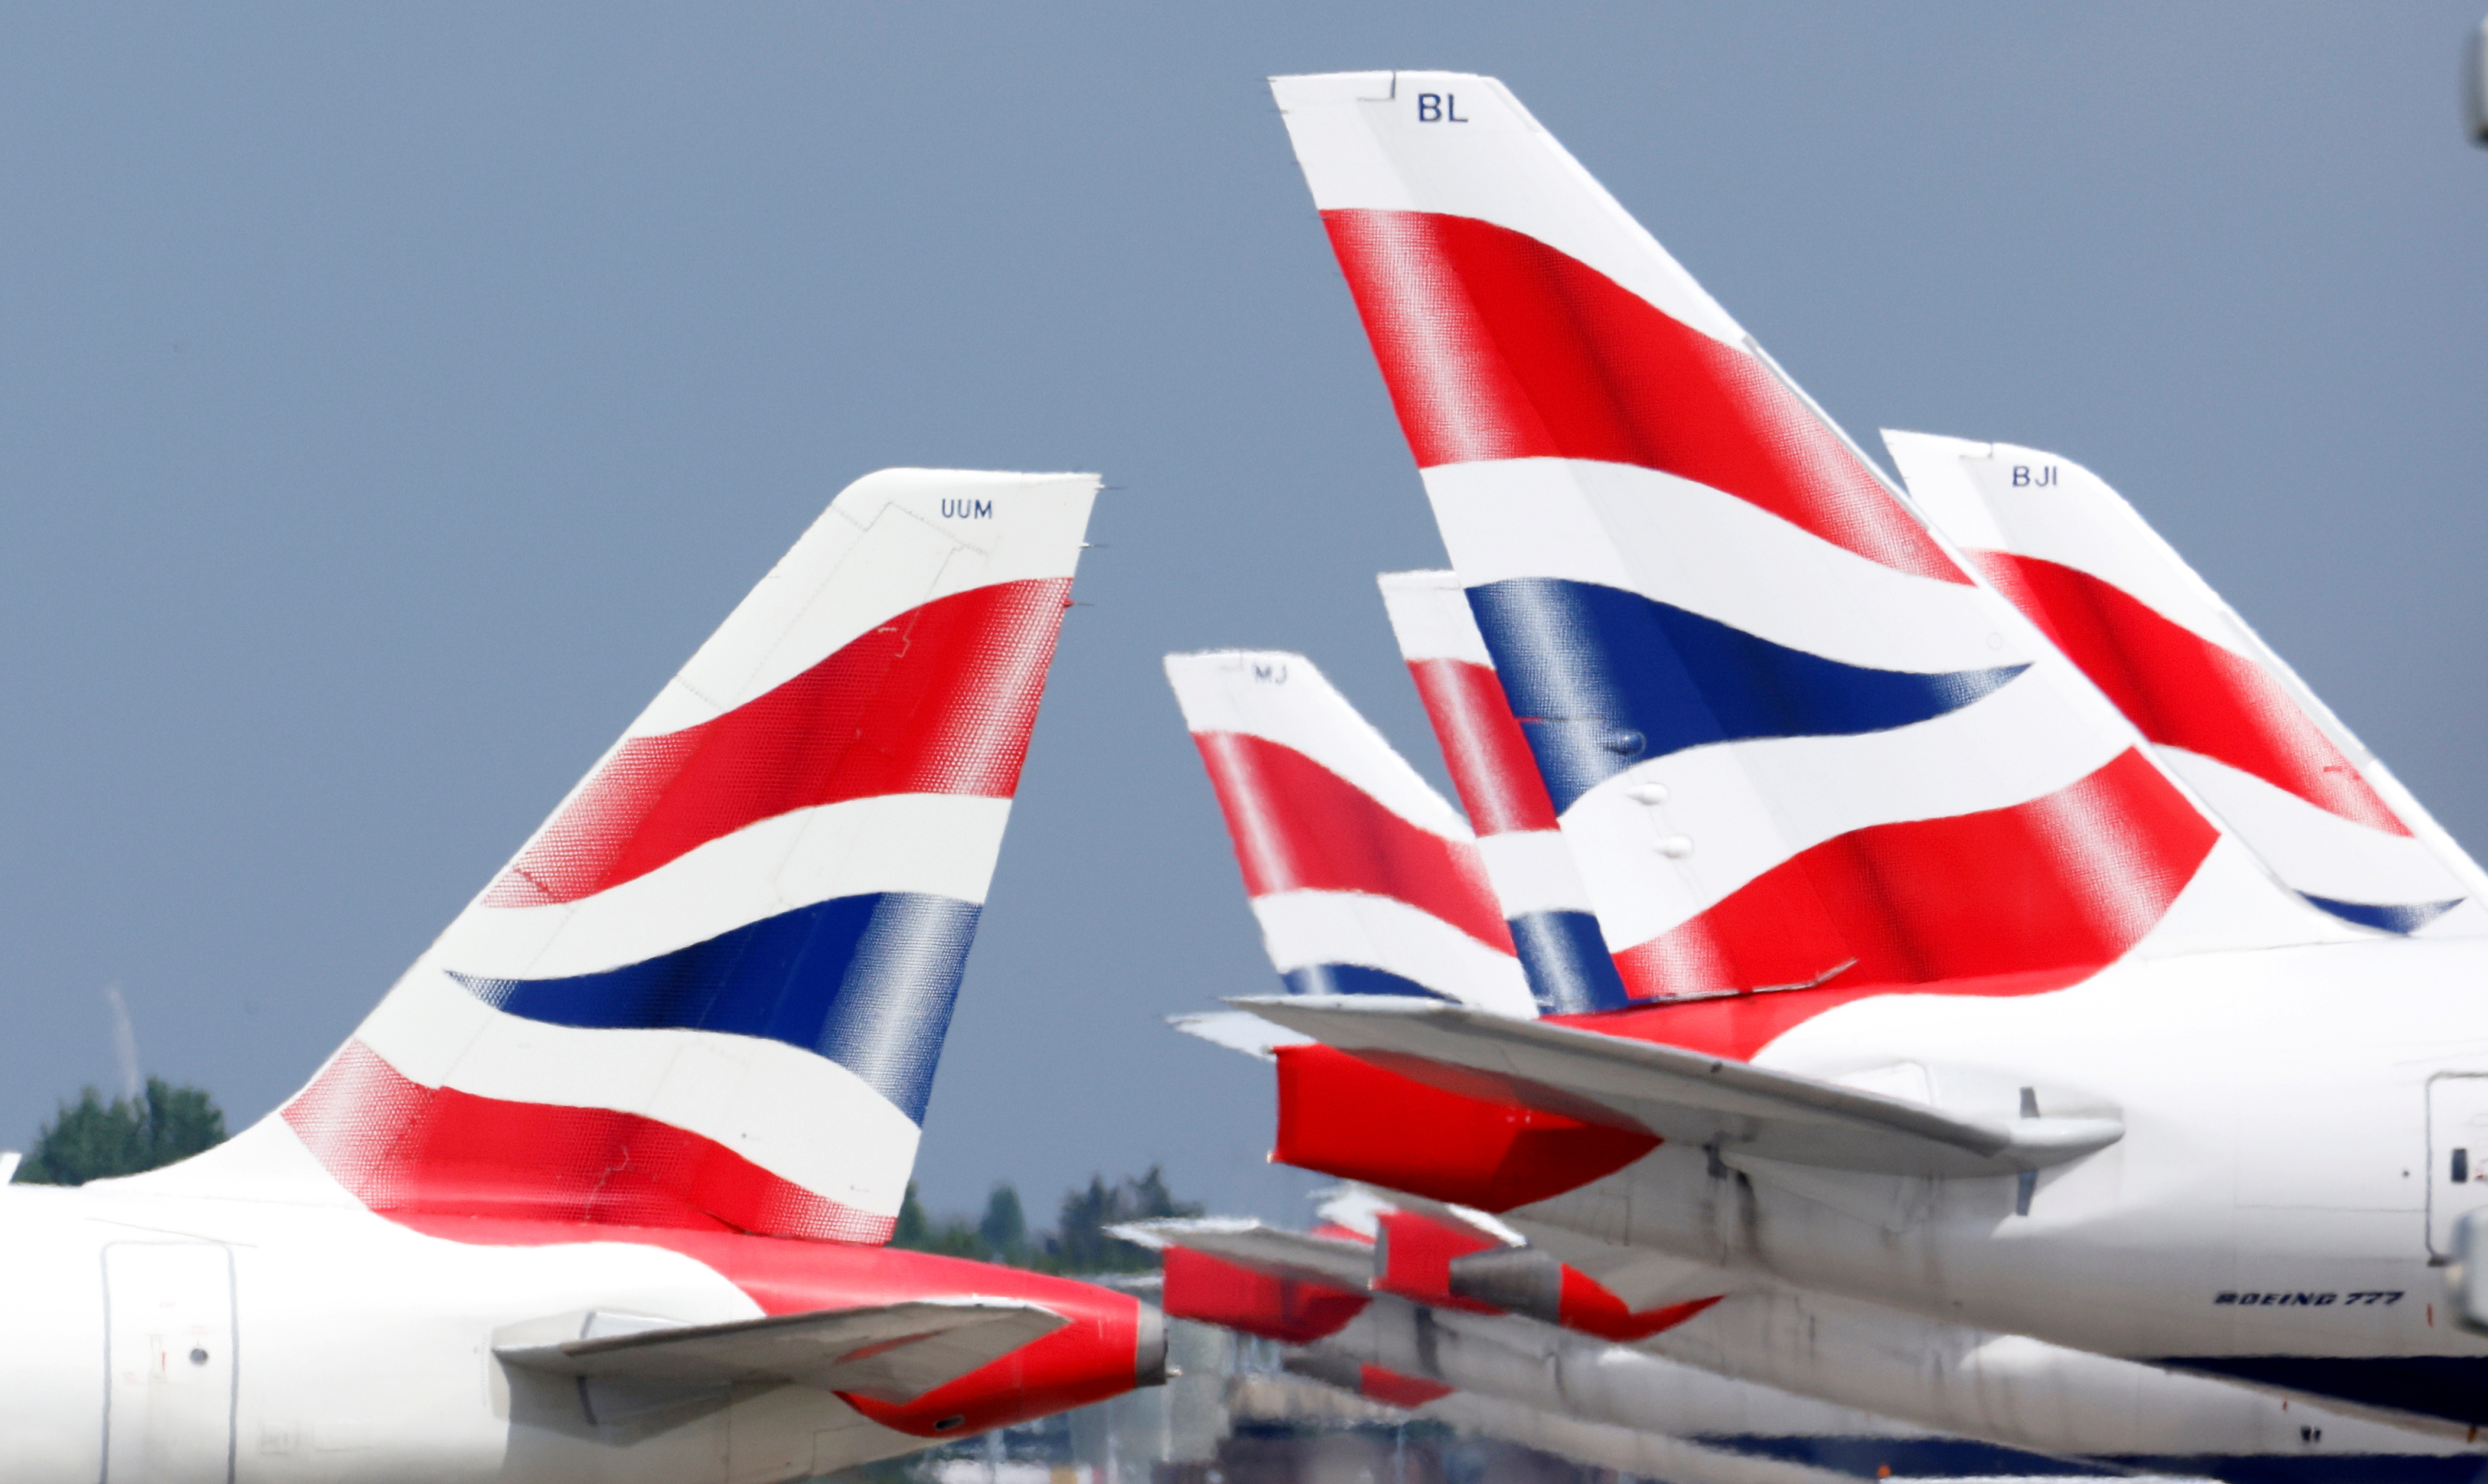 British Airways tail fins are pictured at Heathrow Airport in London, Britain, May 17, 2021. REUTERS/John Sibley/File Photo